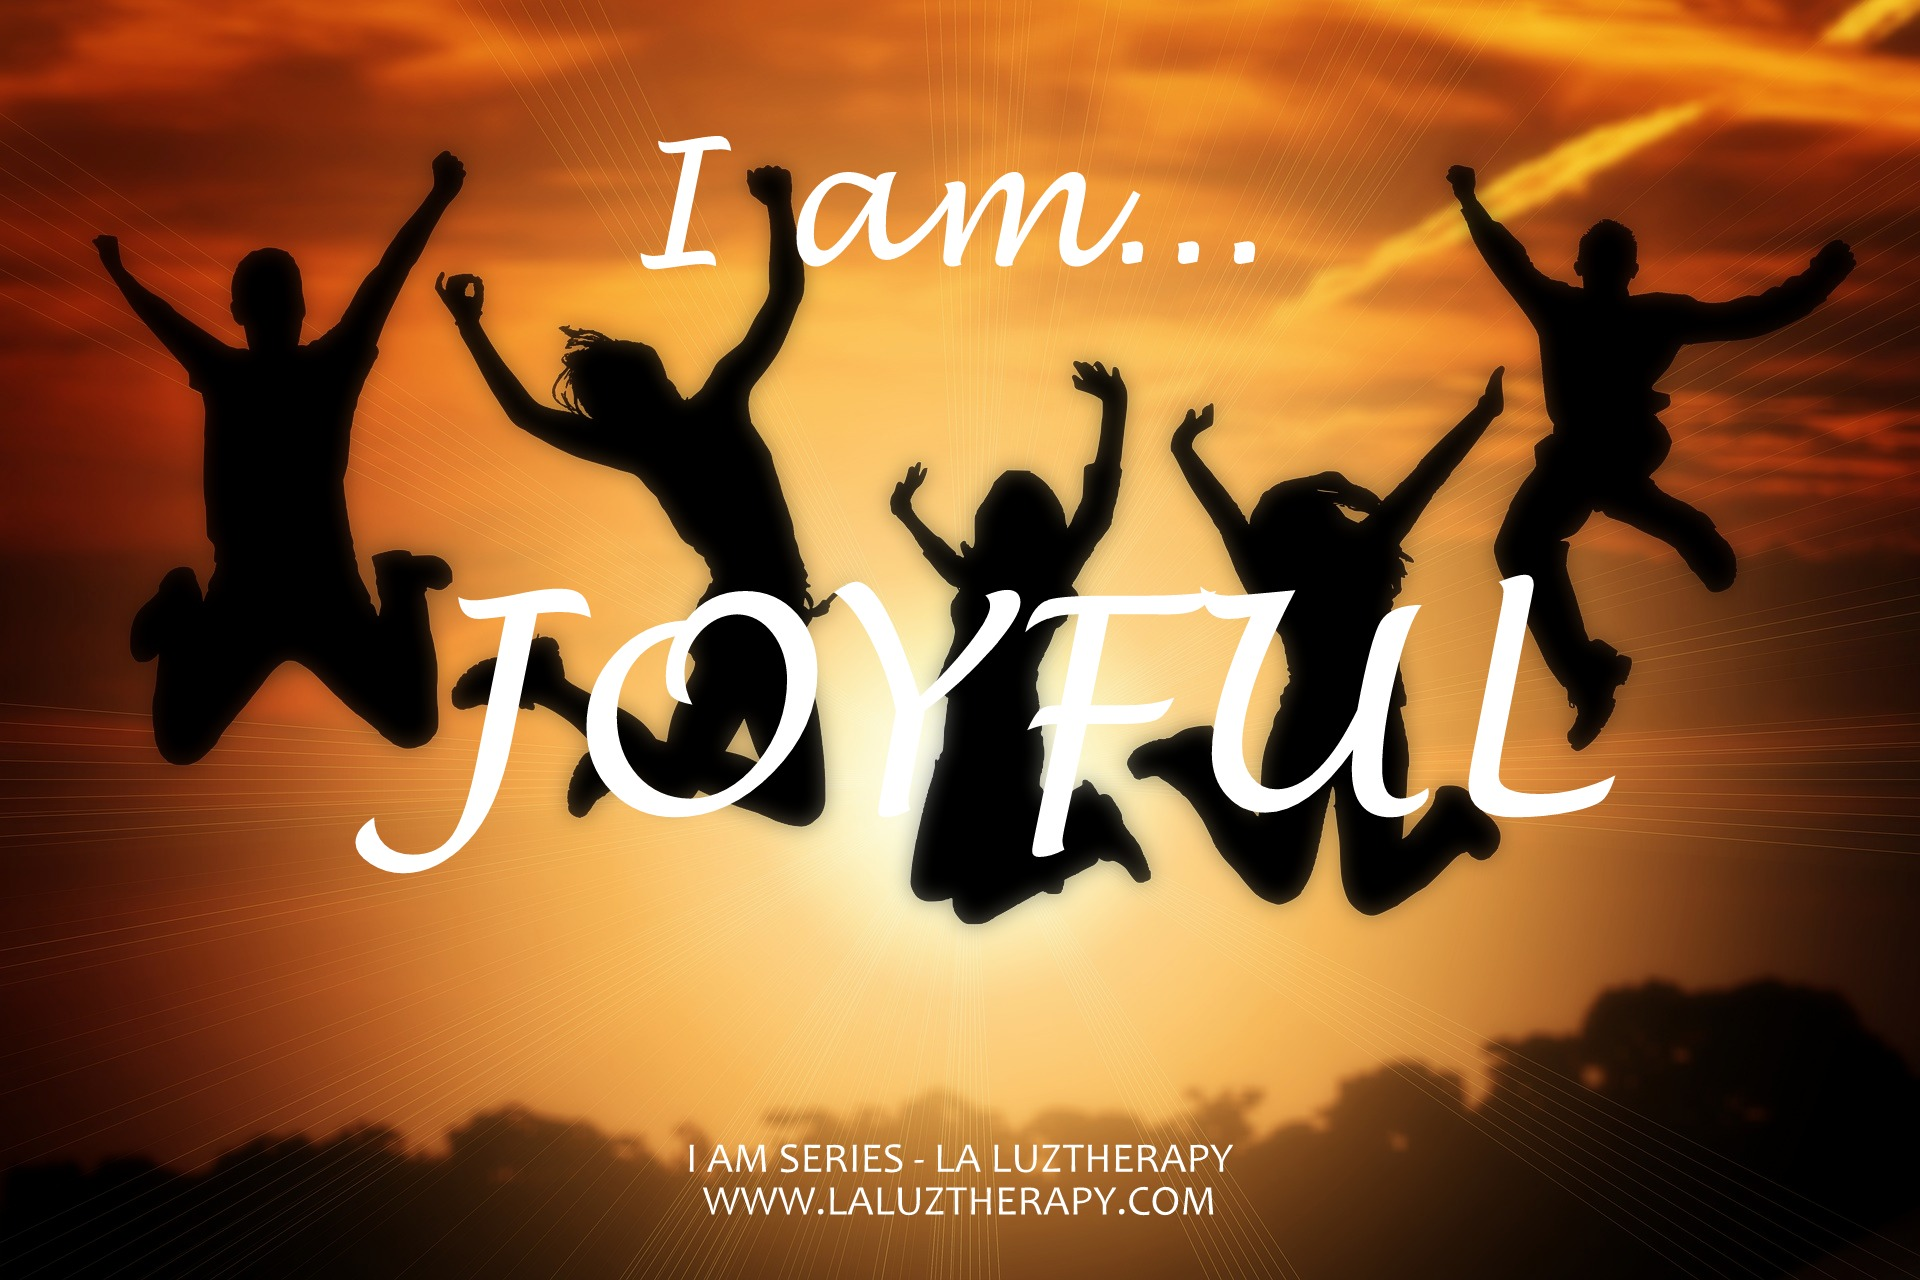 I AM SERIES_JOYFUL La Luz Therapy www.laluztherapy.com reiki meditation wellness vocal sound therapy Lucy Toppetta